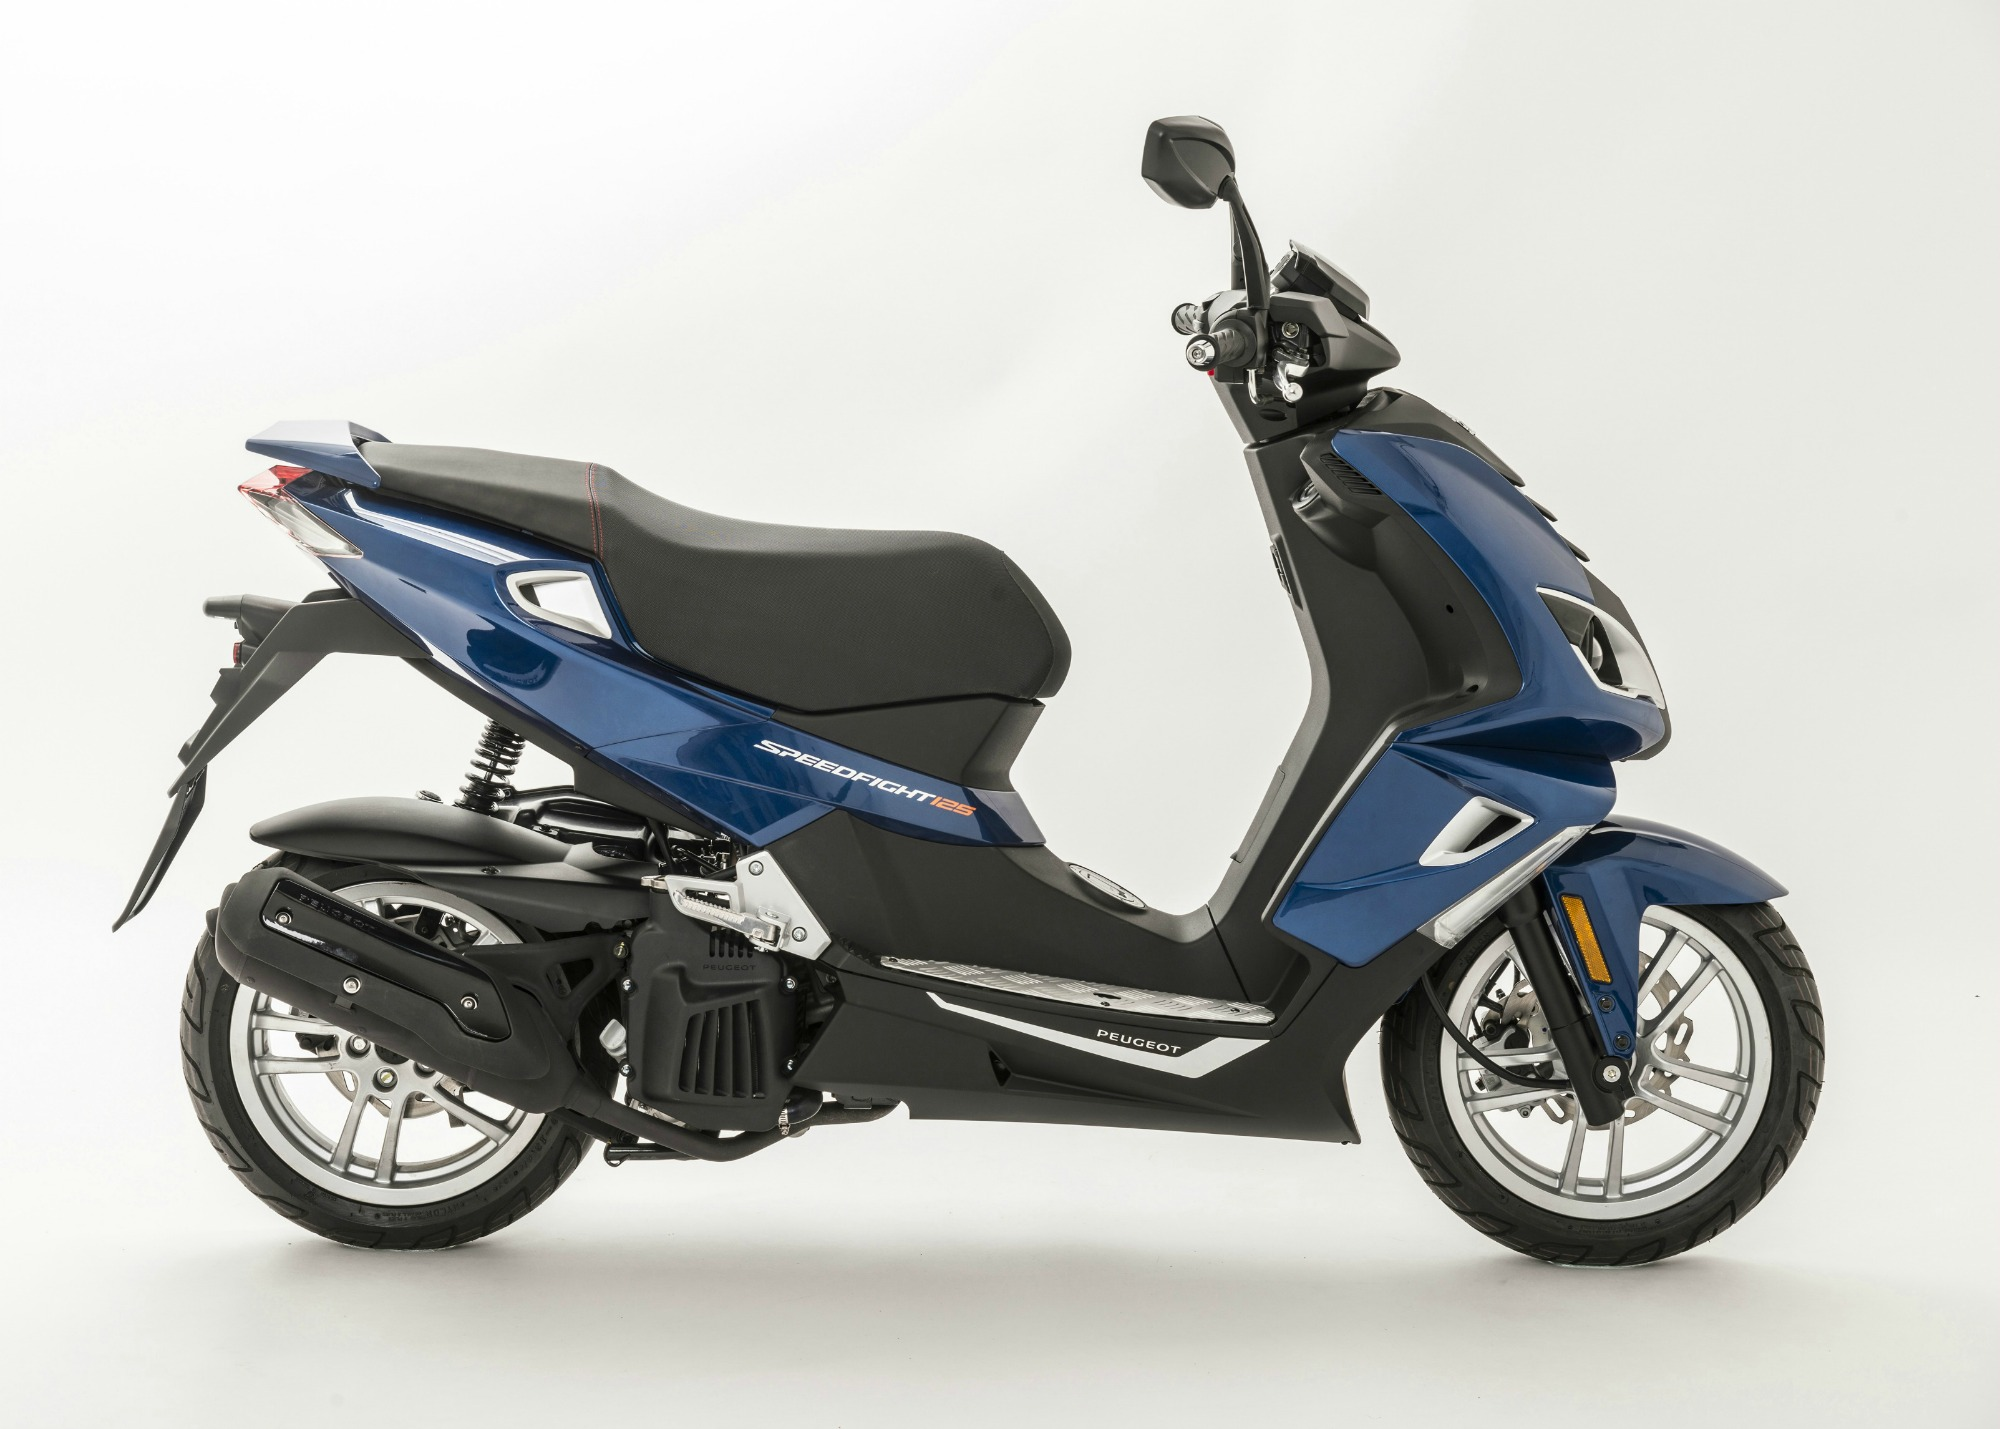 peugeot speedfight 4 125cc deep ocean blue peugeot scooters uk nottingham. Black Bedroom Furniture Sets. Home Design Ideas